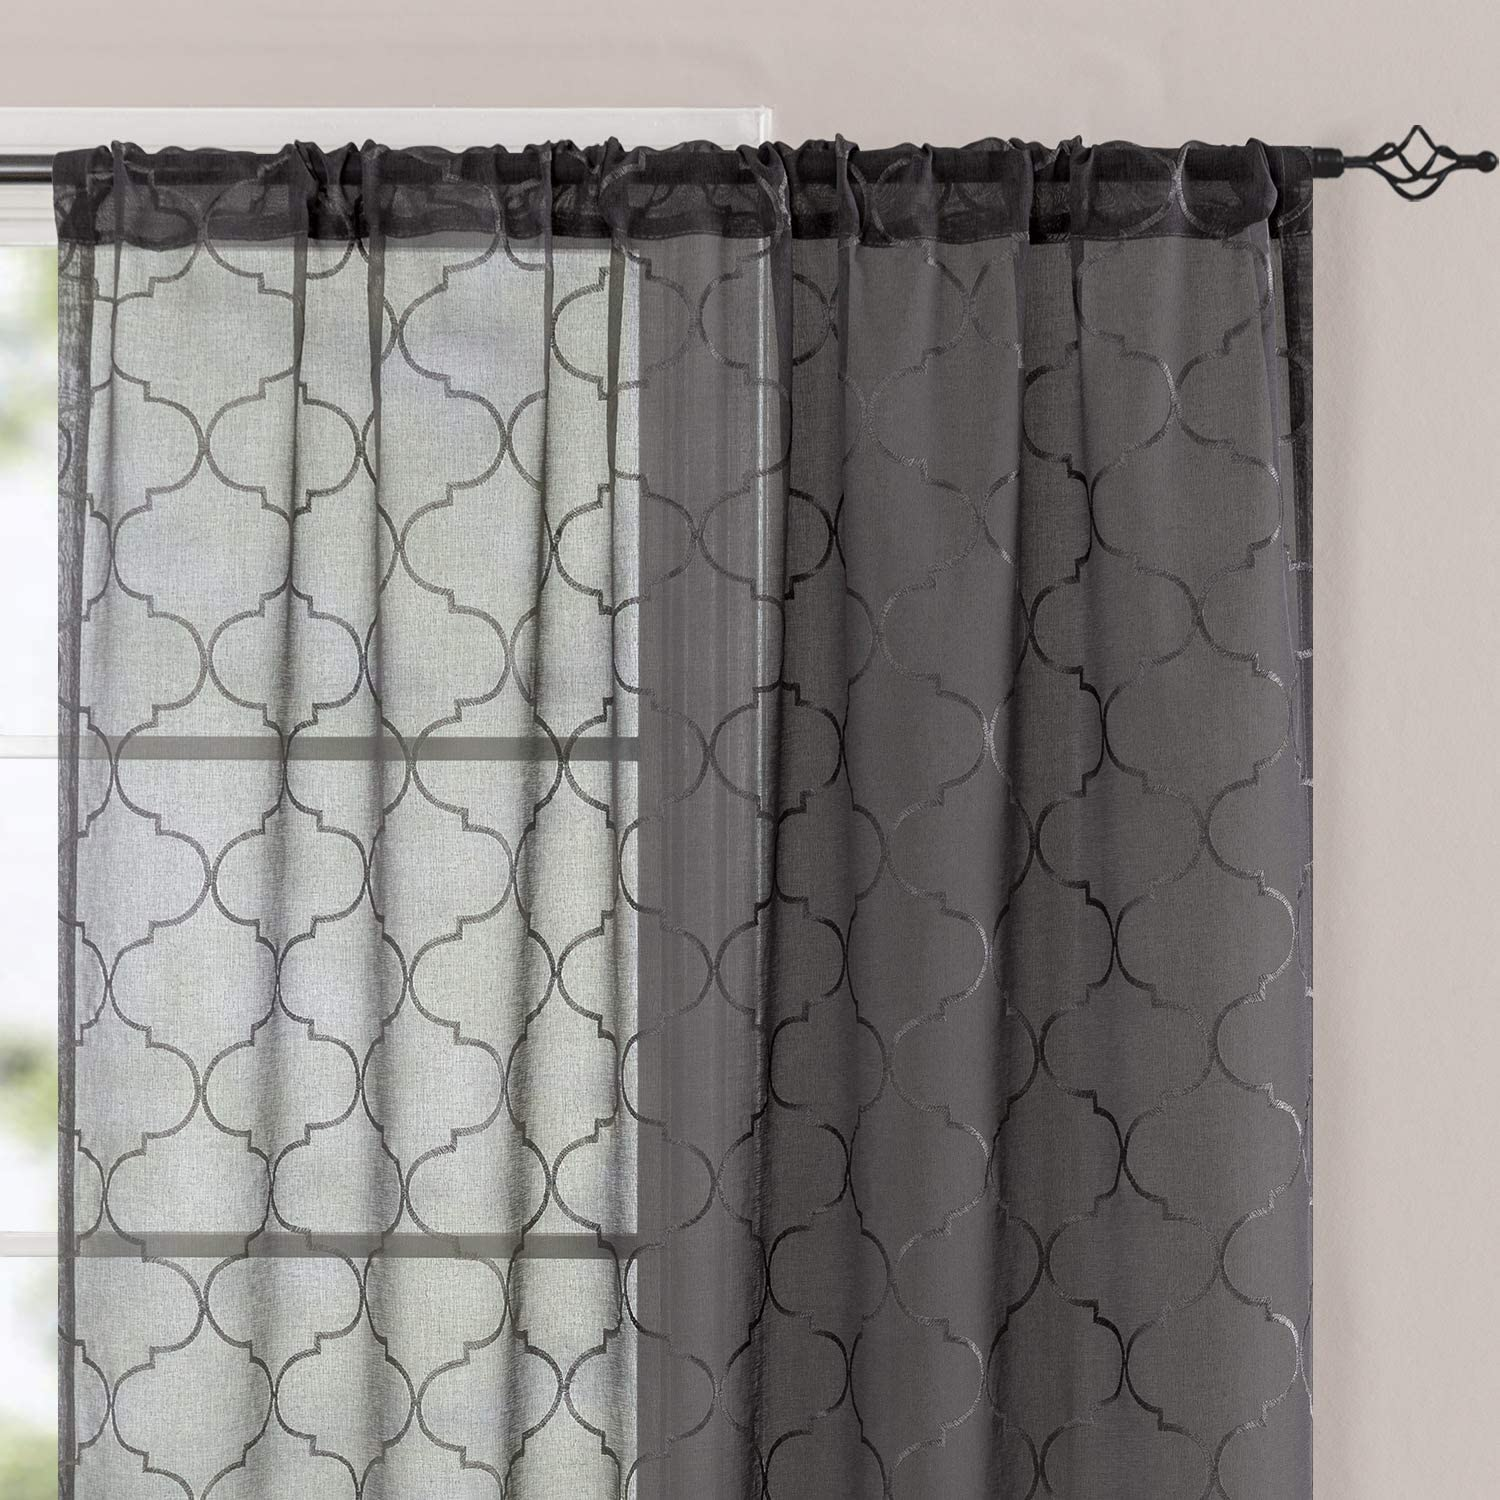 Amazon Com Sheer Curtains Geometric For Living Room Moroccan Embroidered Curtains For Bedroom Rod Pocket Lattice Quatrefoil Semi Sheer Curtain Drapes 63 Inch Length Window Treatments Grey 2 Panels Kitchen Dining